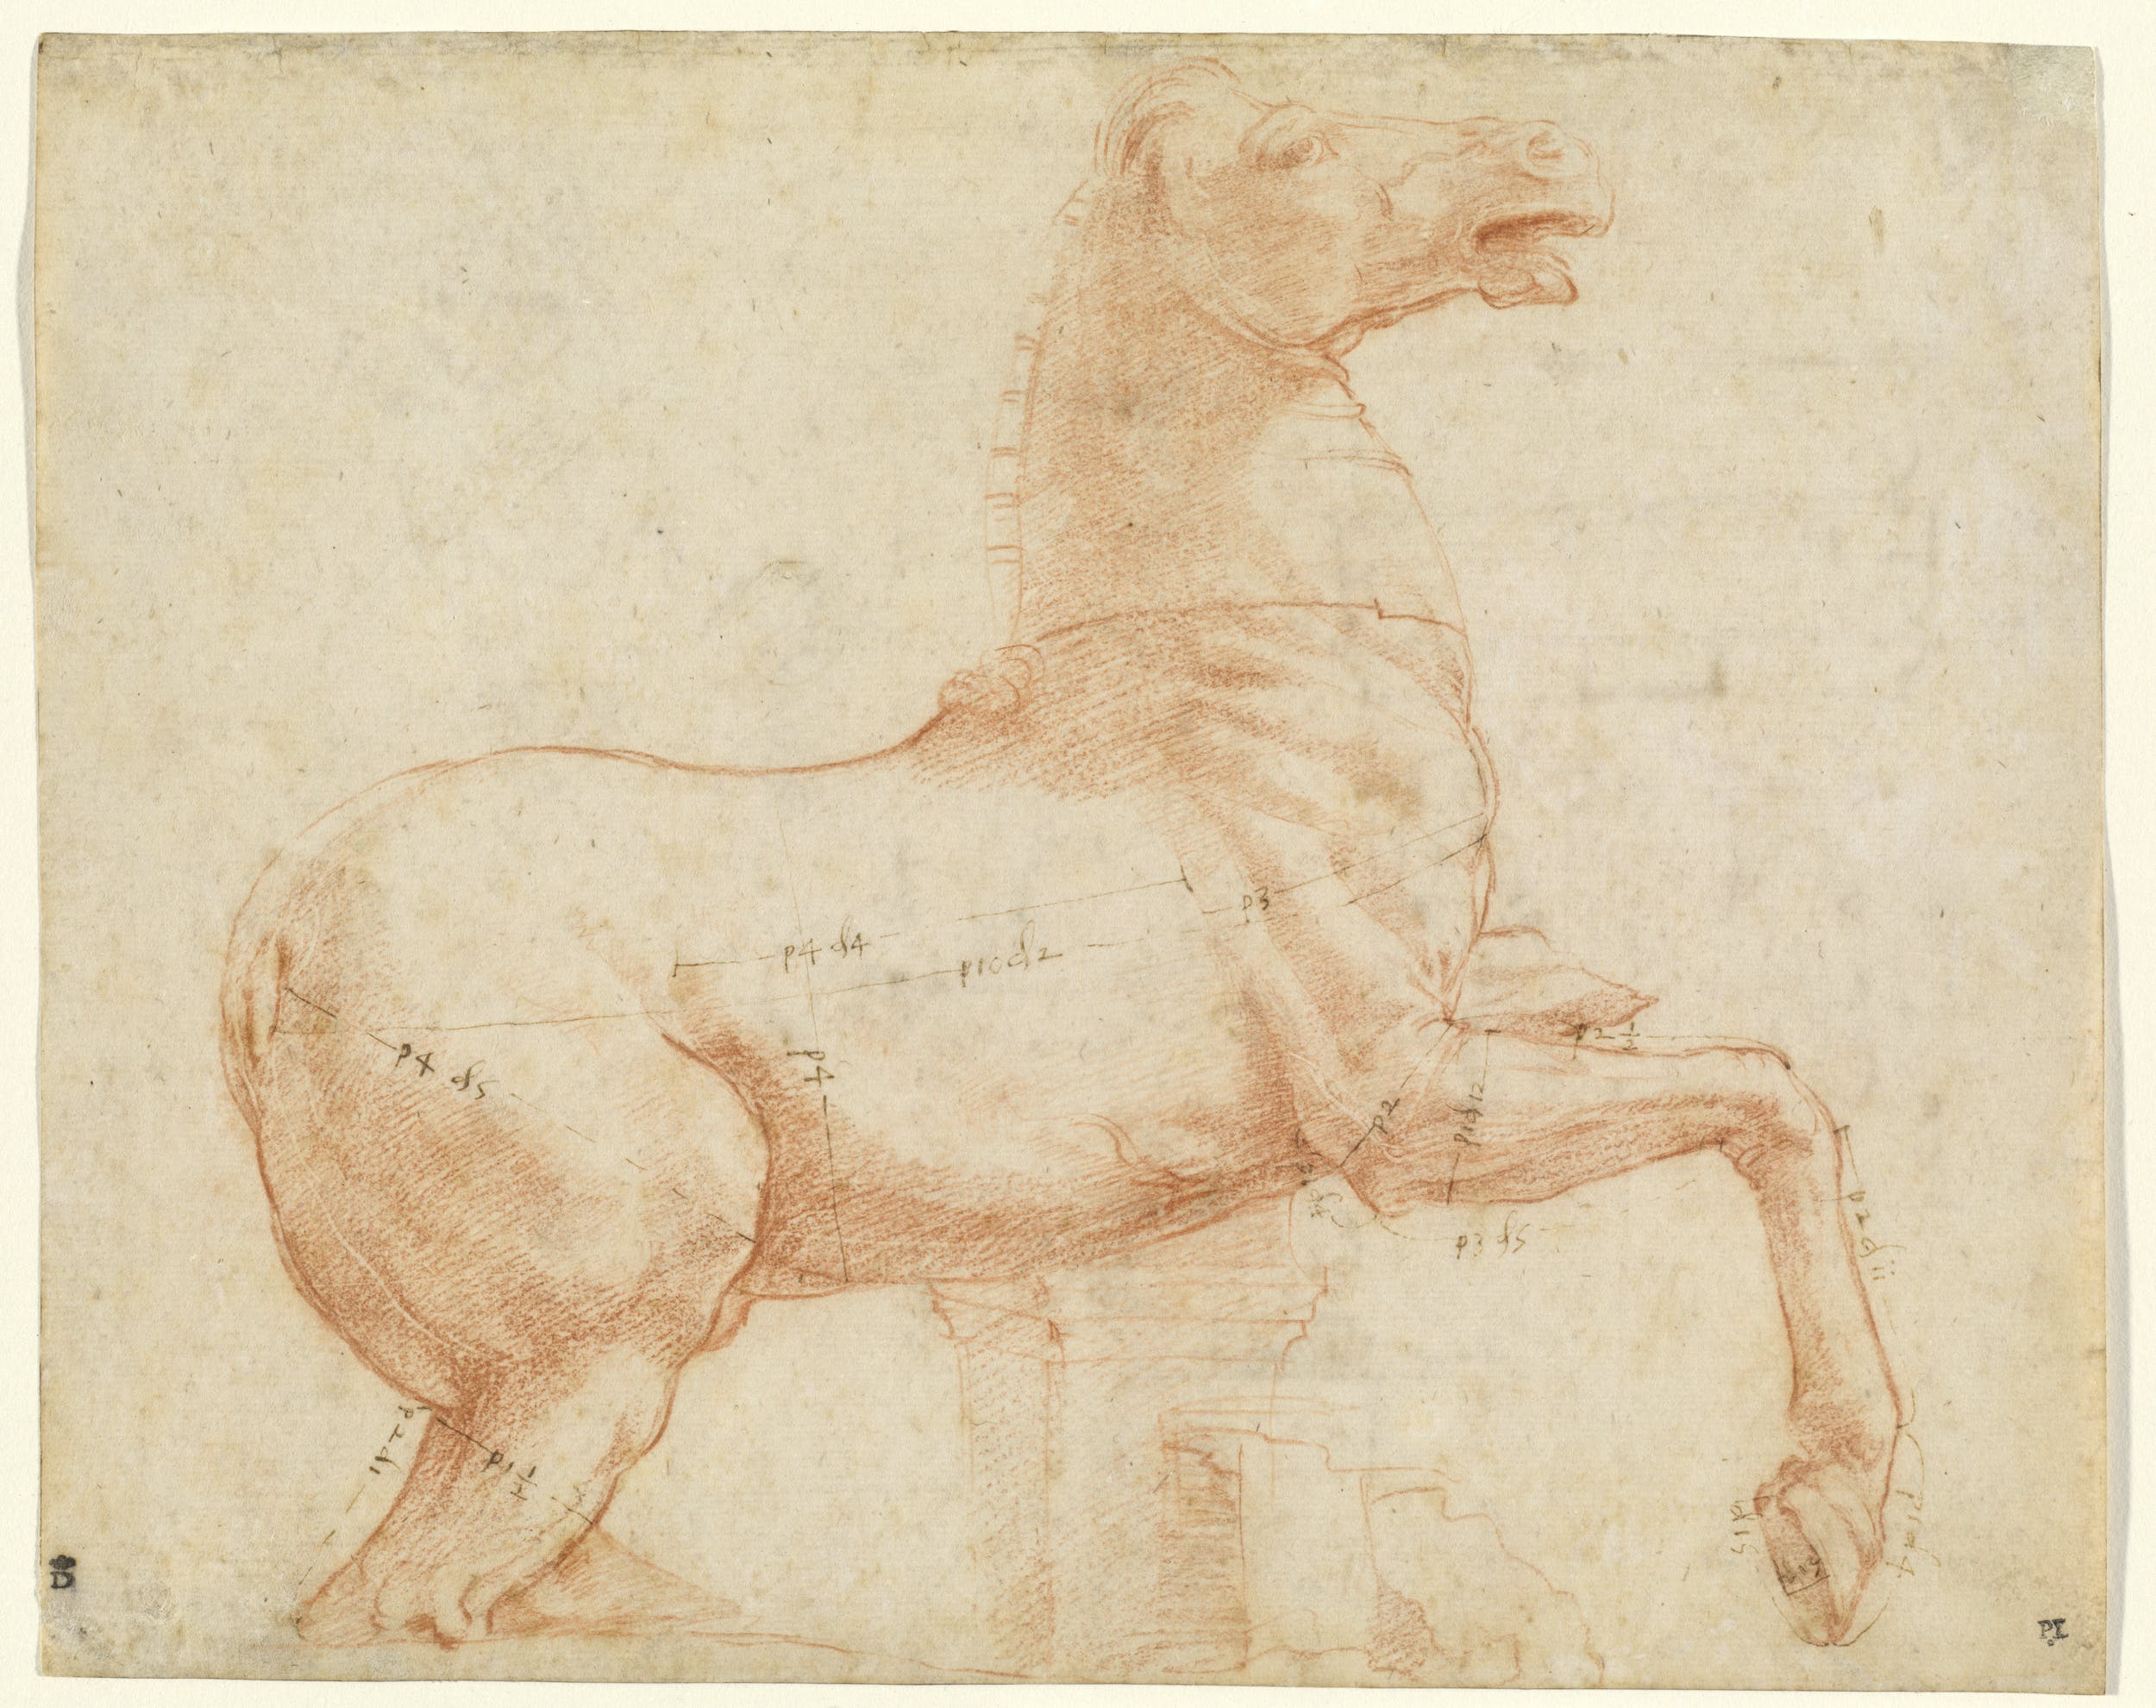 ) Raffaello Cavallo dell'antico gruppo dei Dioscuri sul colle del Quirinale Horse of hold group of Dioscuri on Quirinale hill 1513 circa pietra rossa, penna e inchiostro / red chalck, pen and ink Washington, D.C., National Gallery of Art